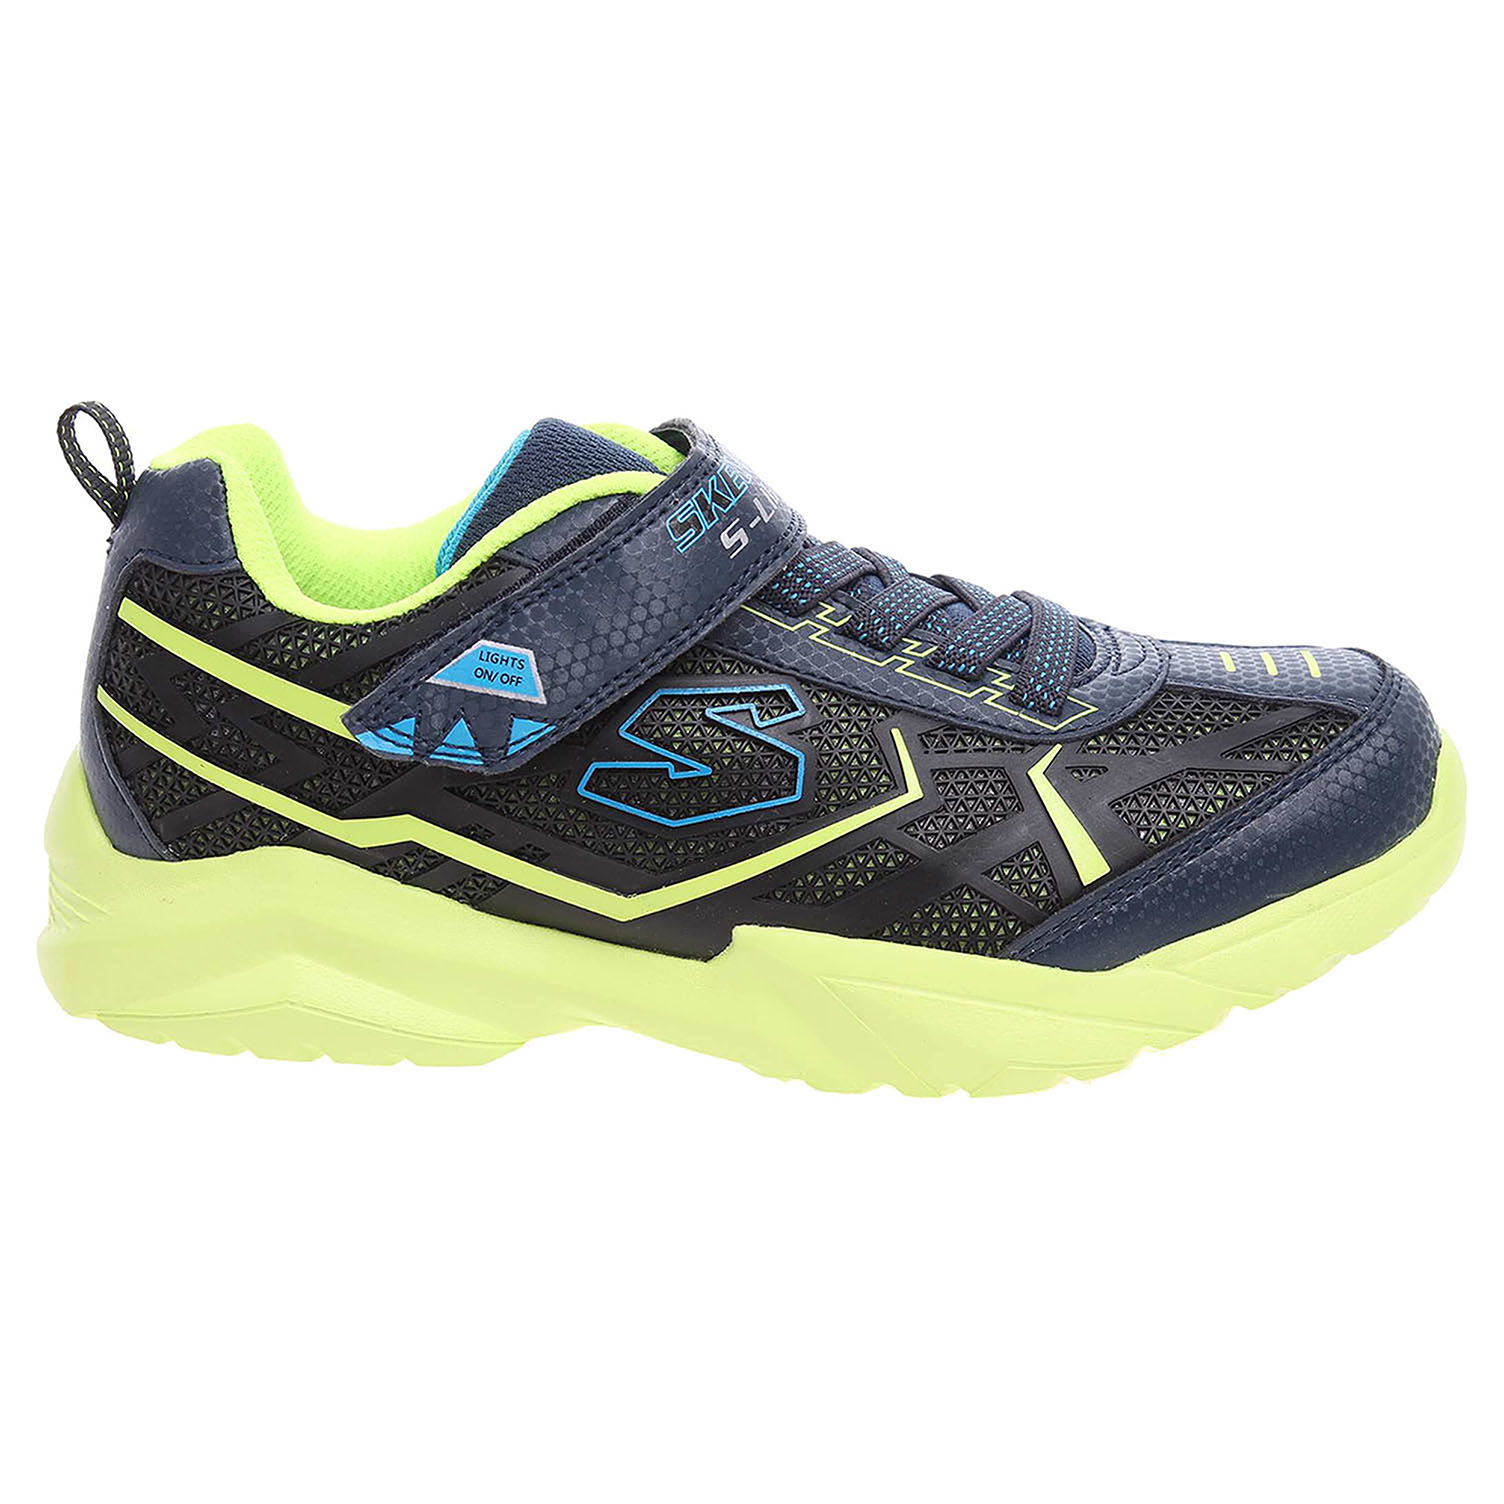 Skechers Broozer navy-lime